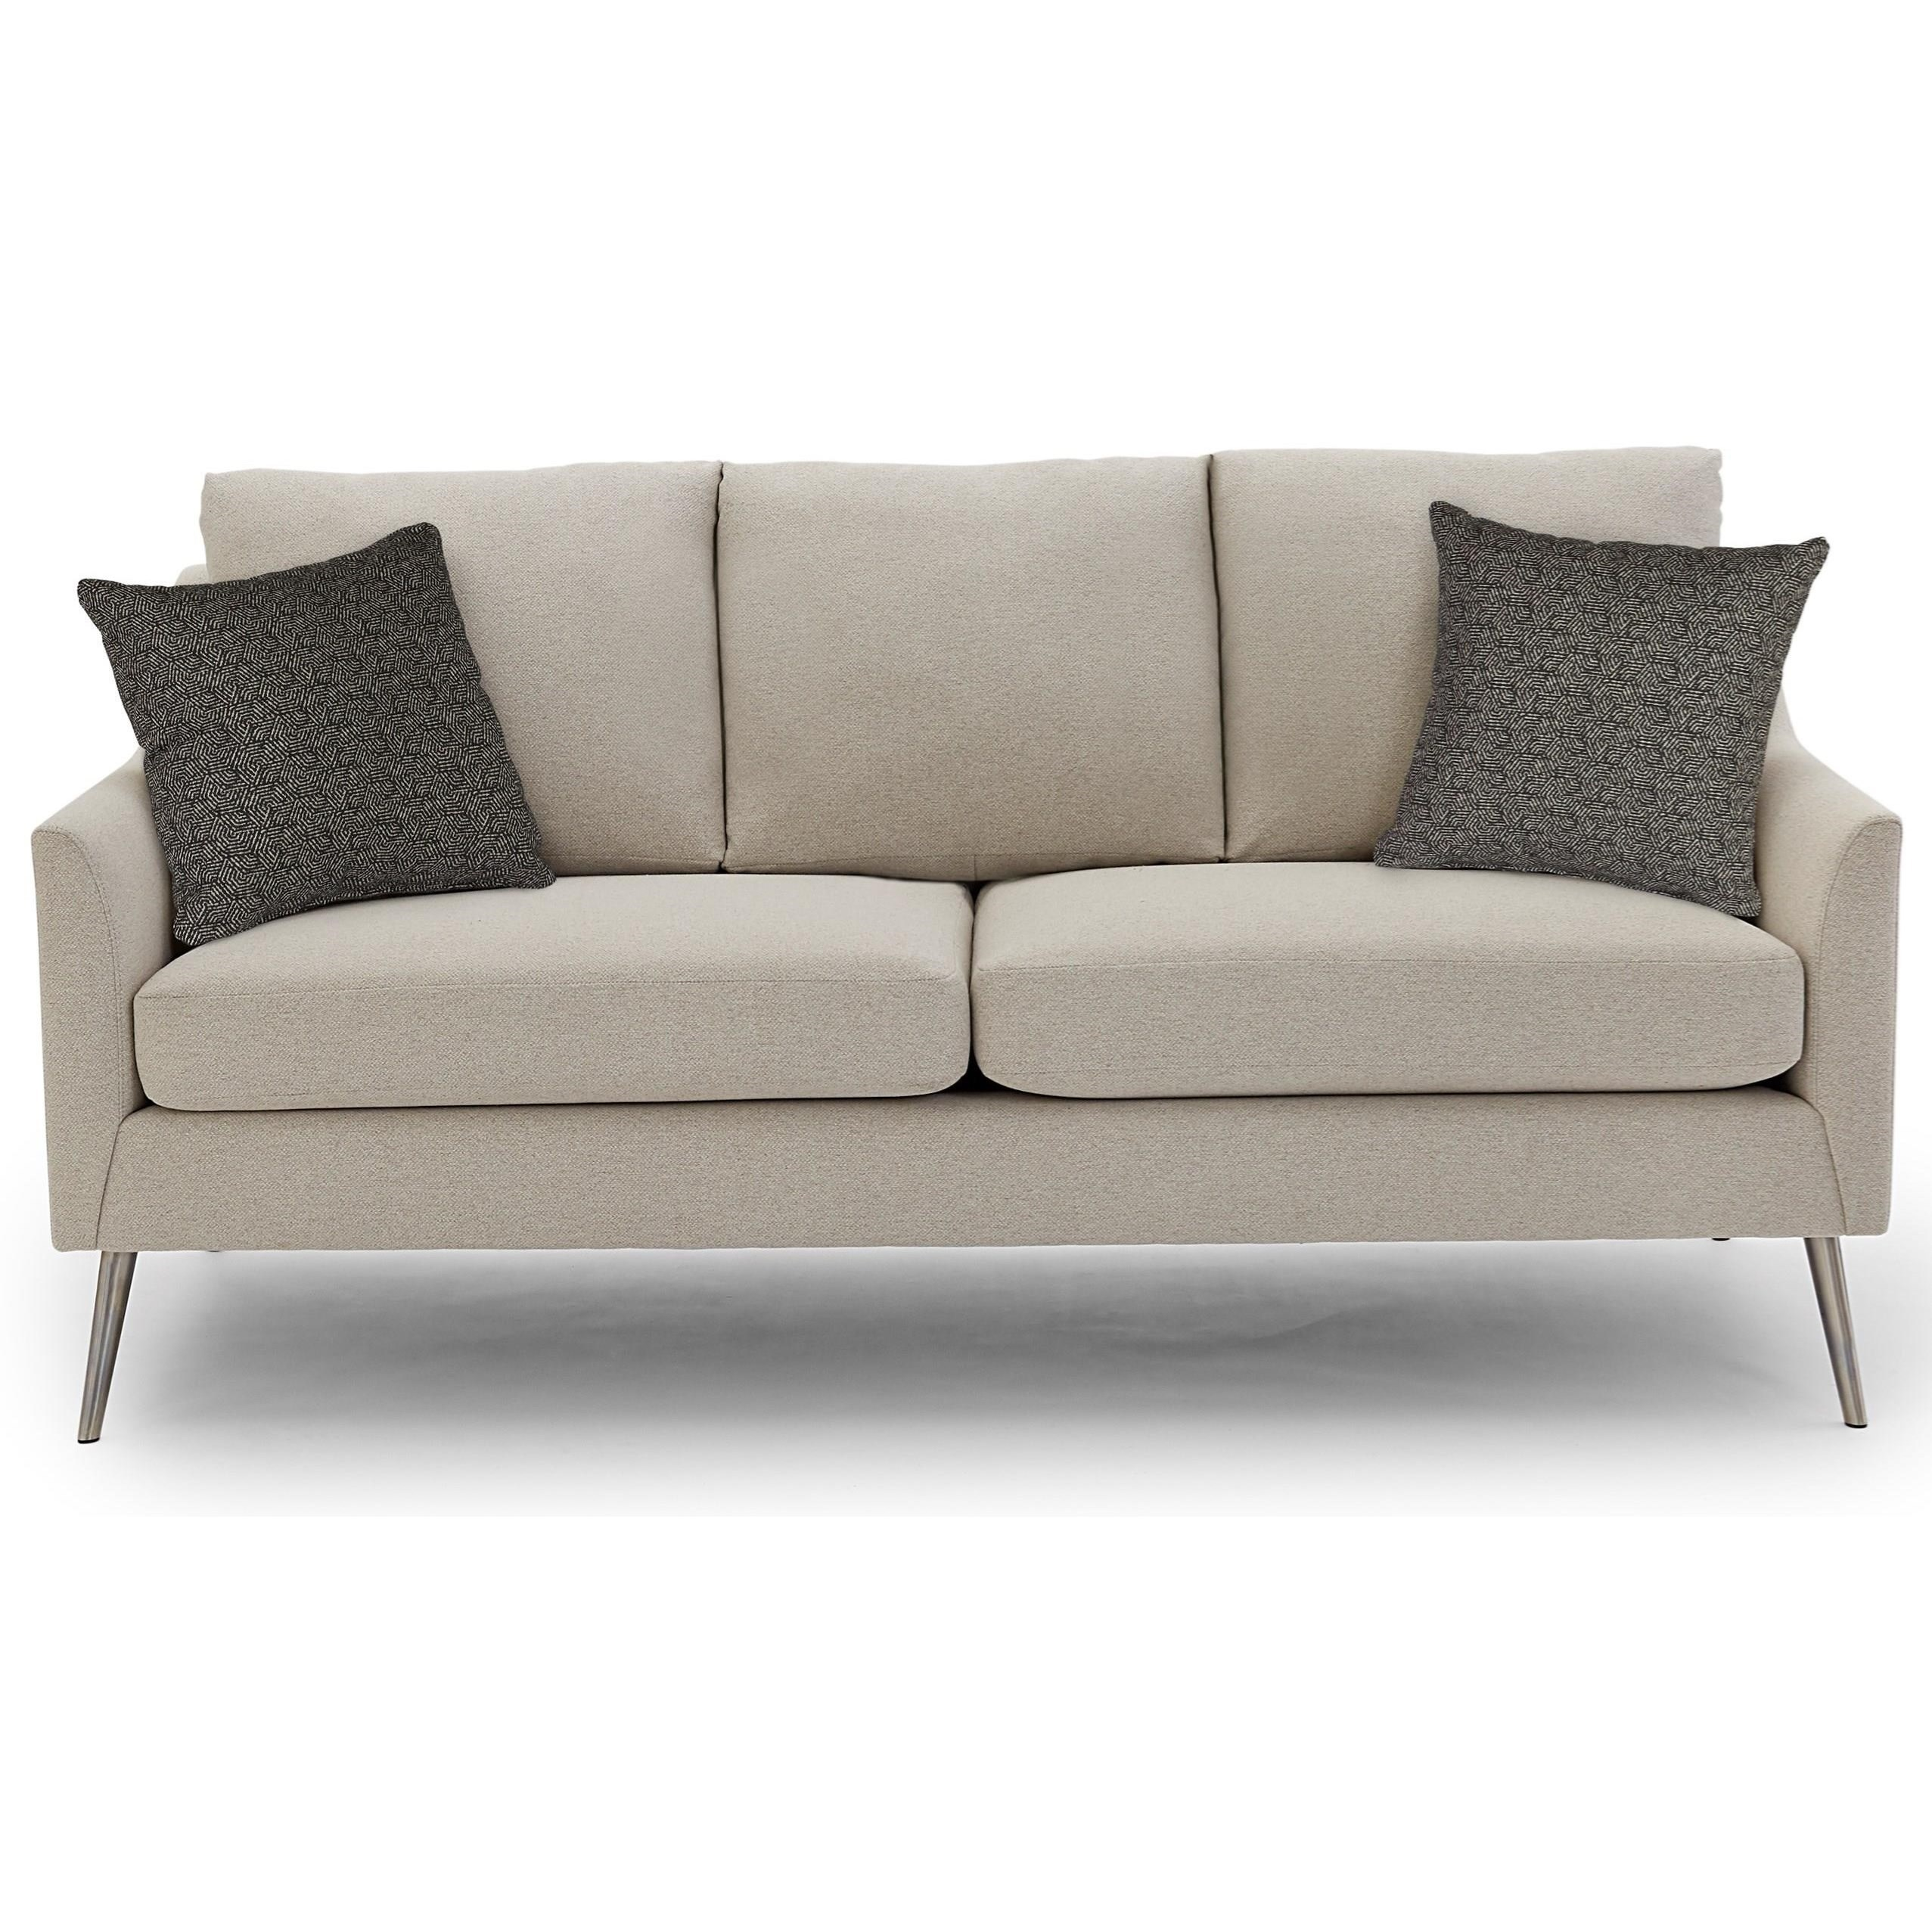 Mid-Century Modern Sofa With Reversible Seat Cushions